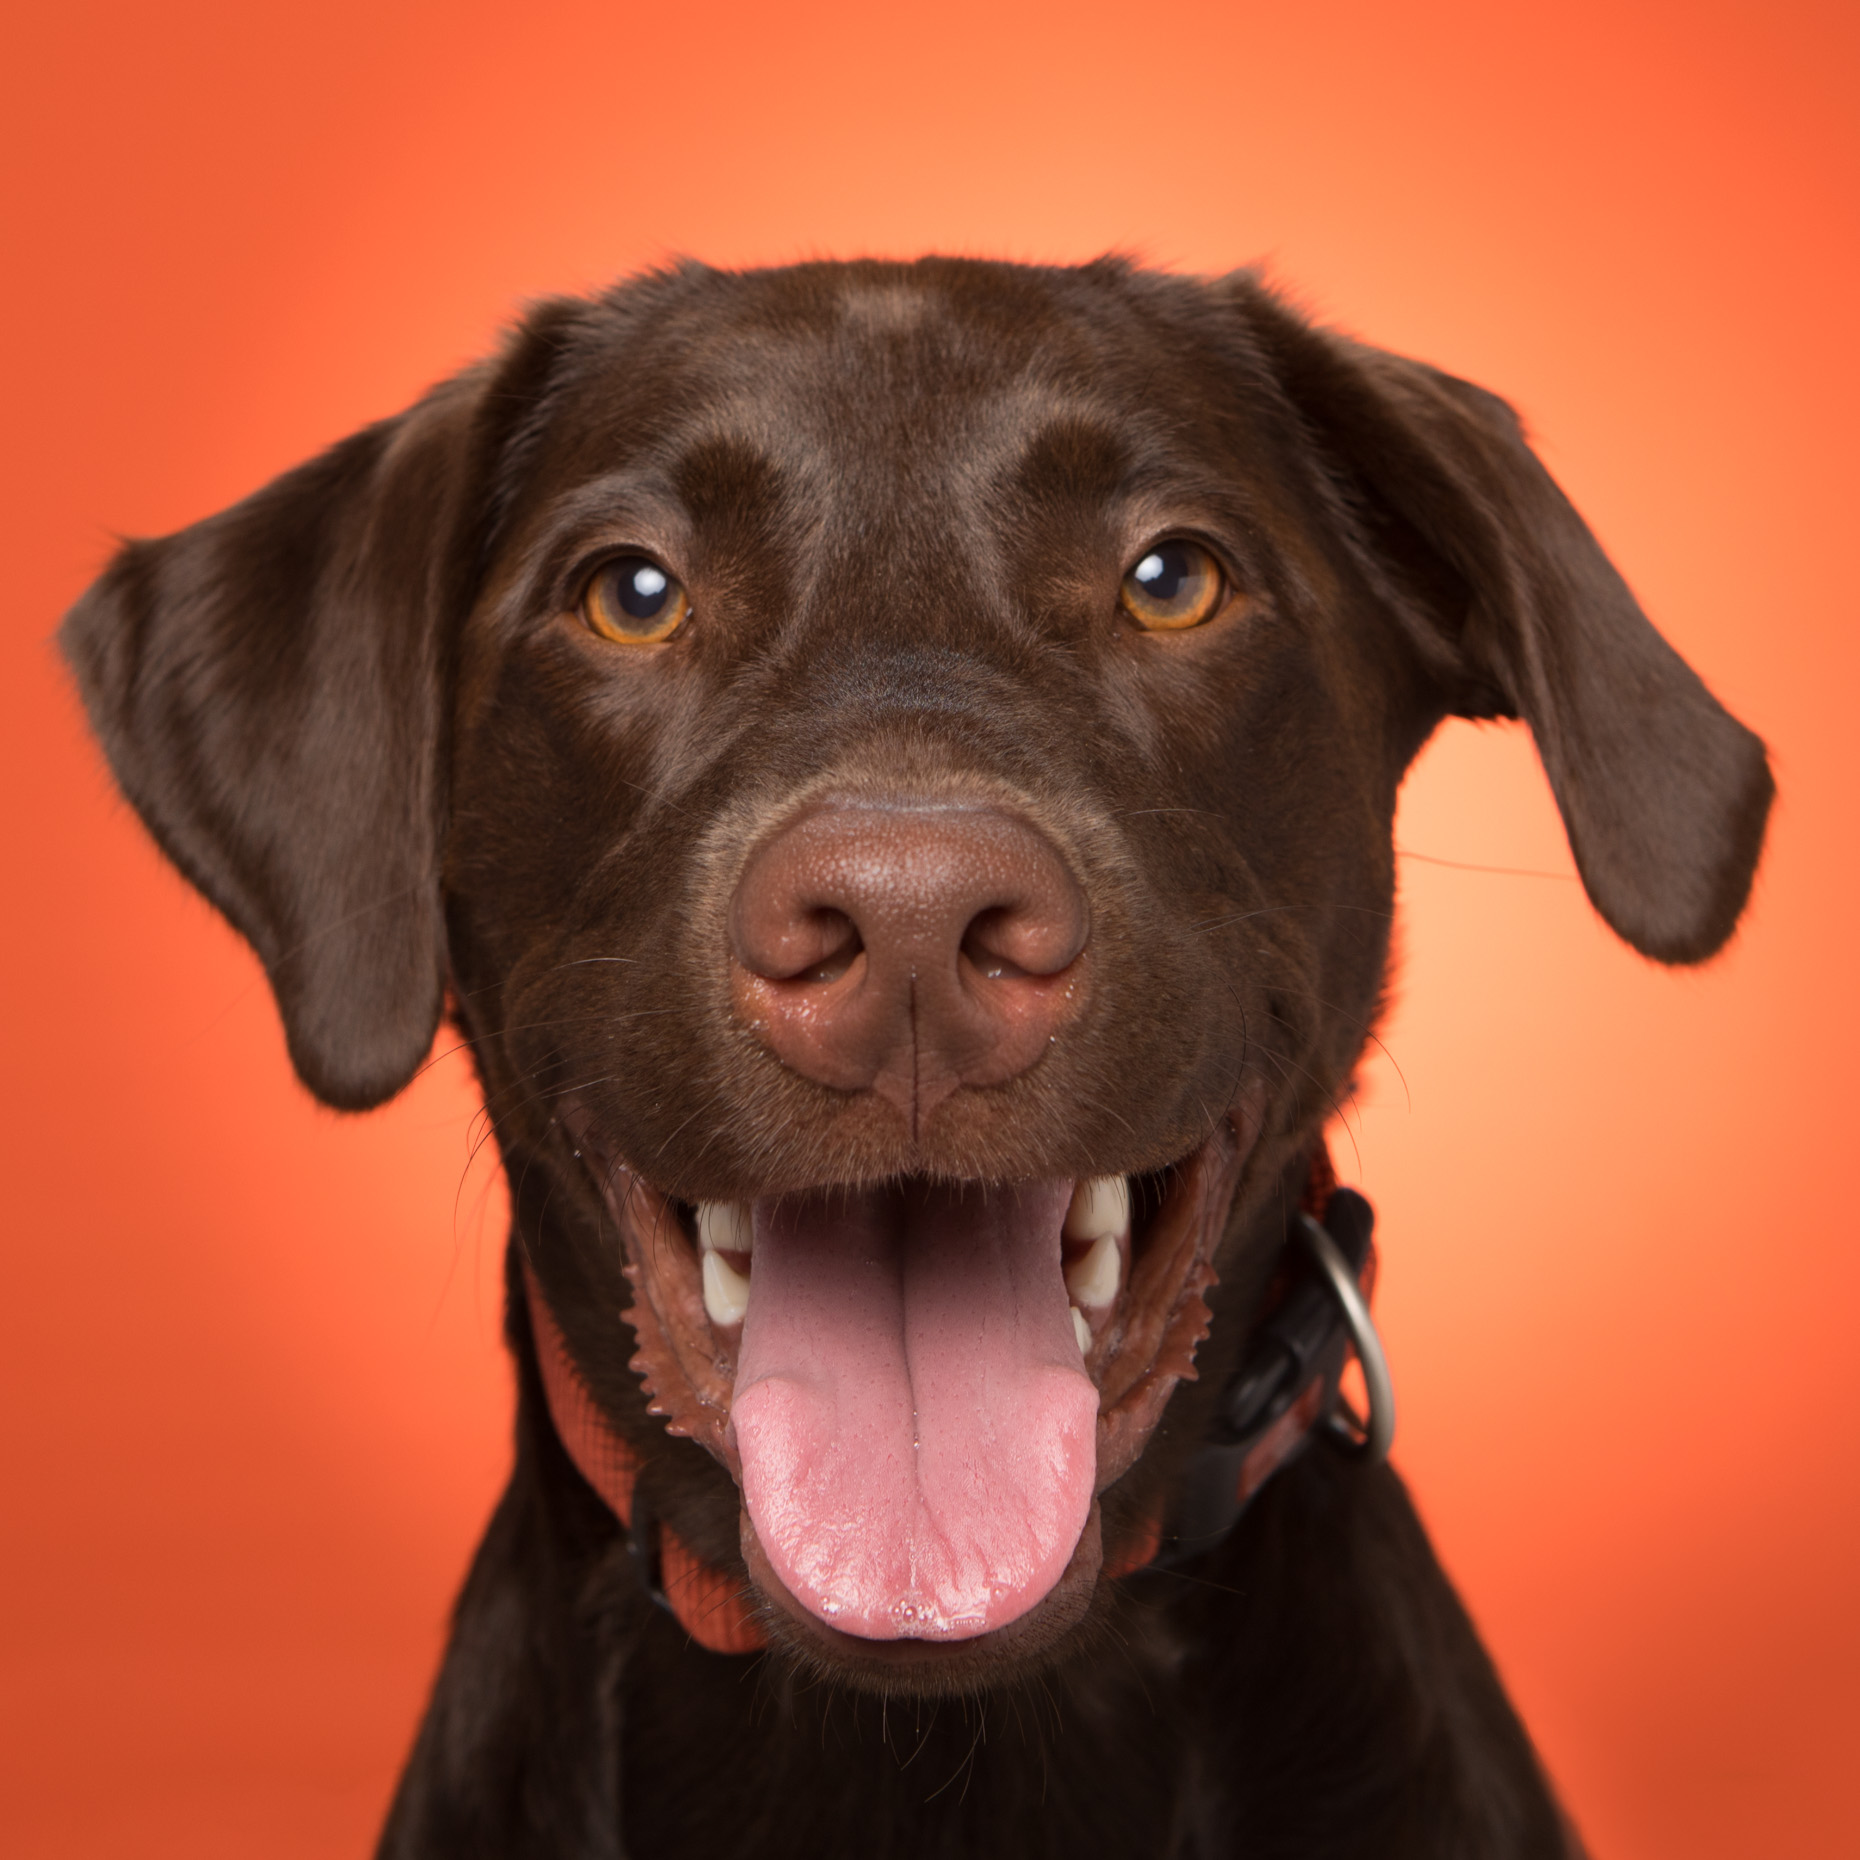 Dog Studio Photography | Happy Chocolate Labrador by Mark Rogers